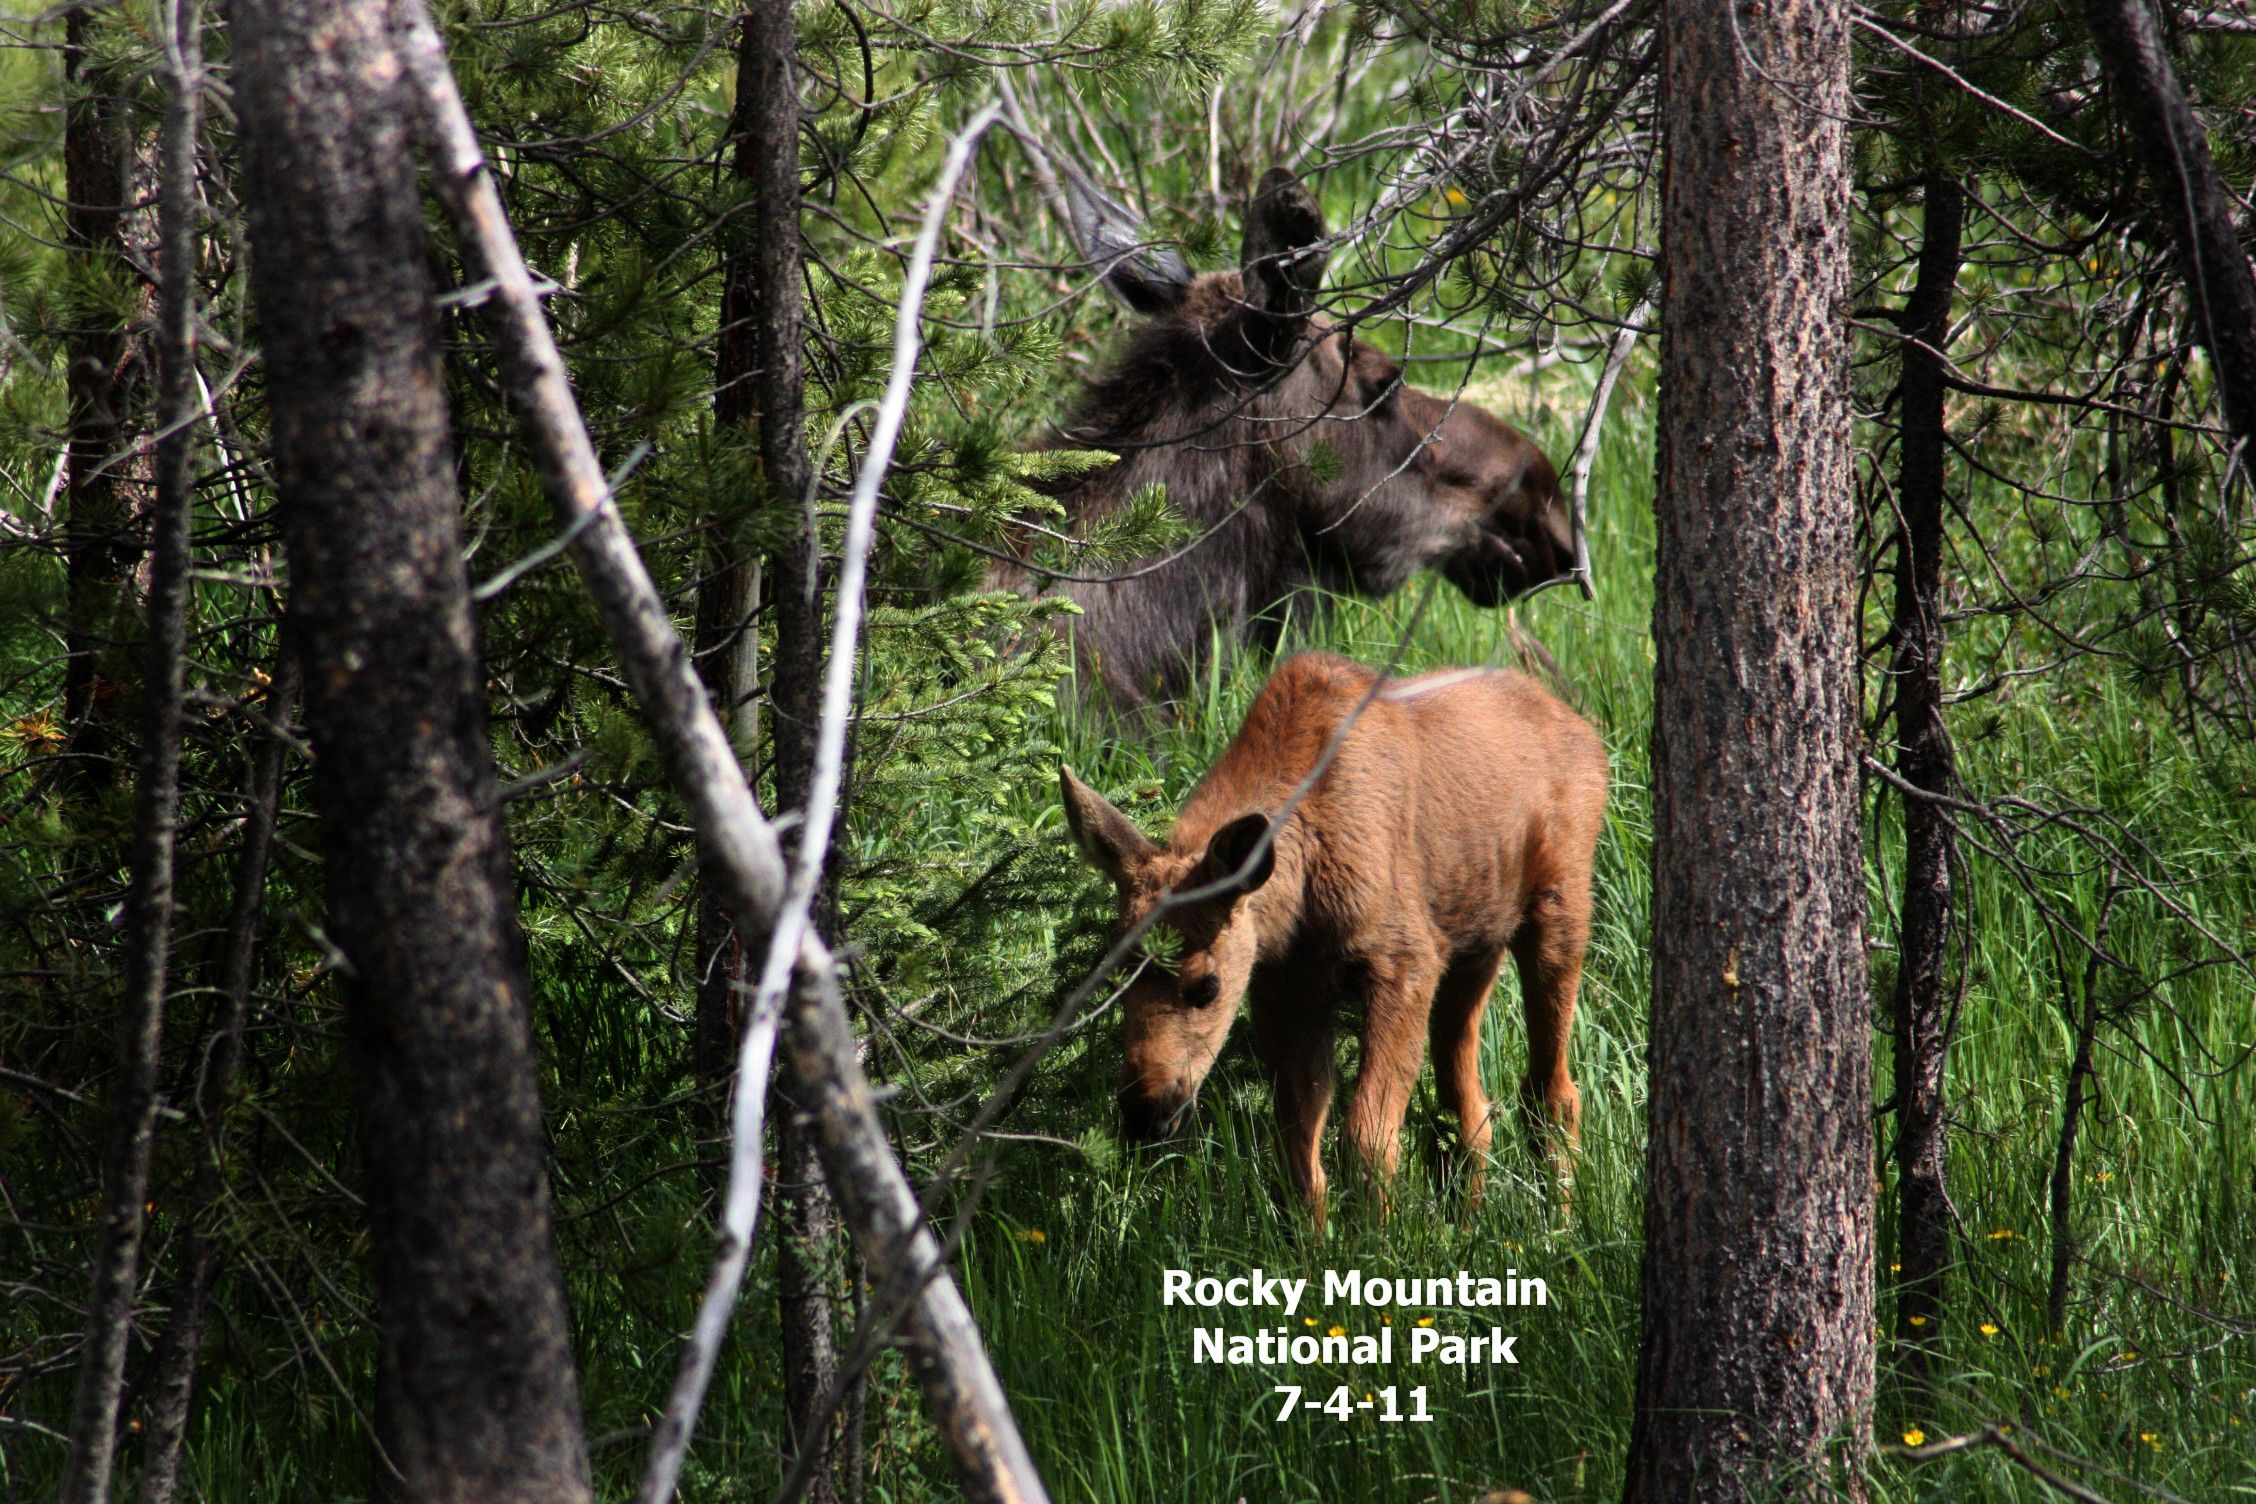 This Mama Moose had twins. They were just adorable. Rocky Mountain National Park